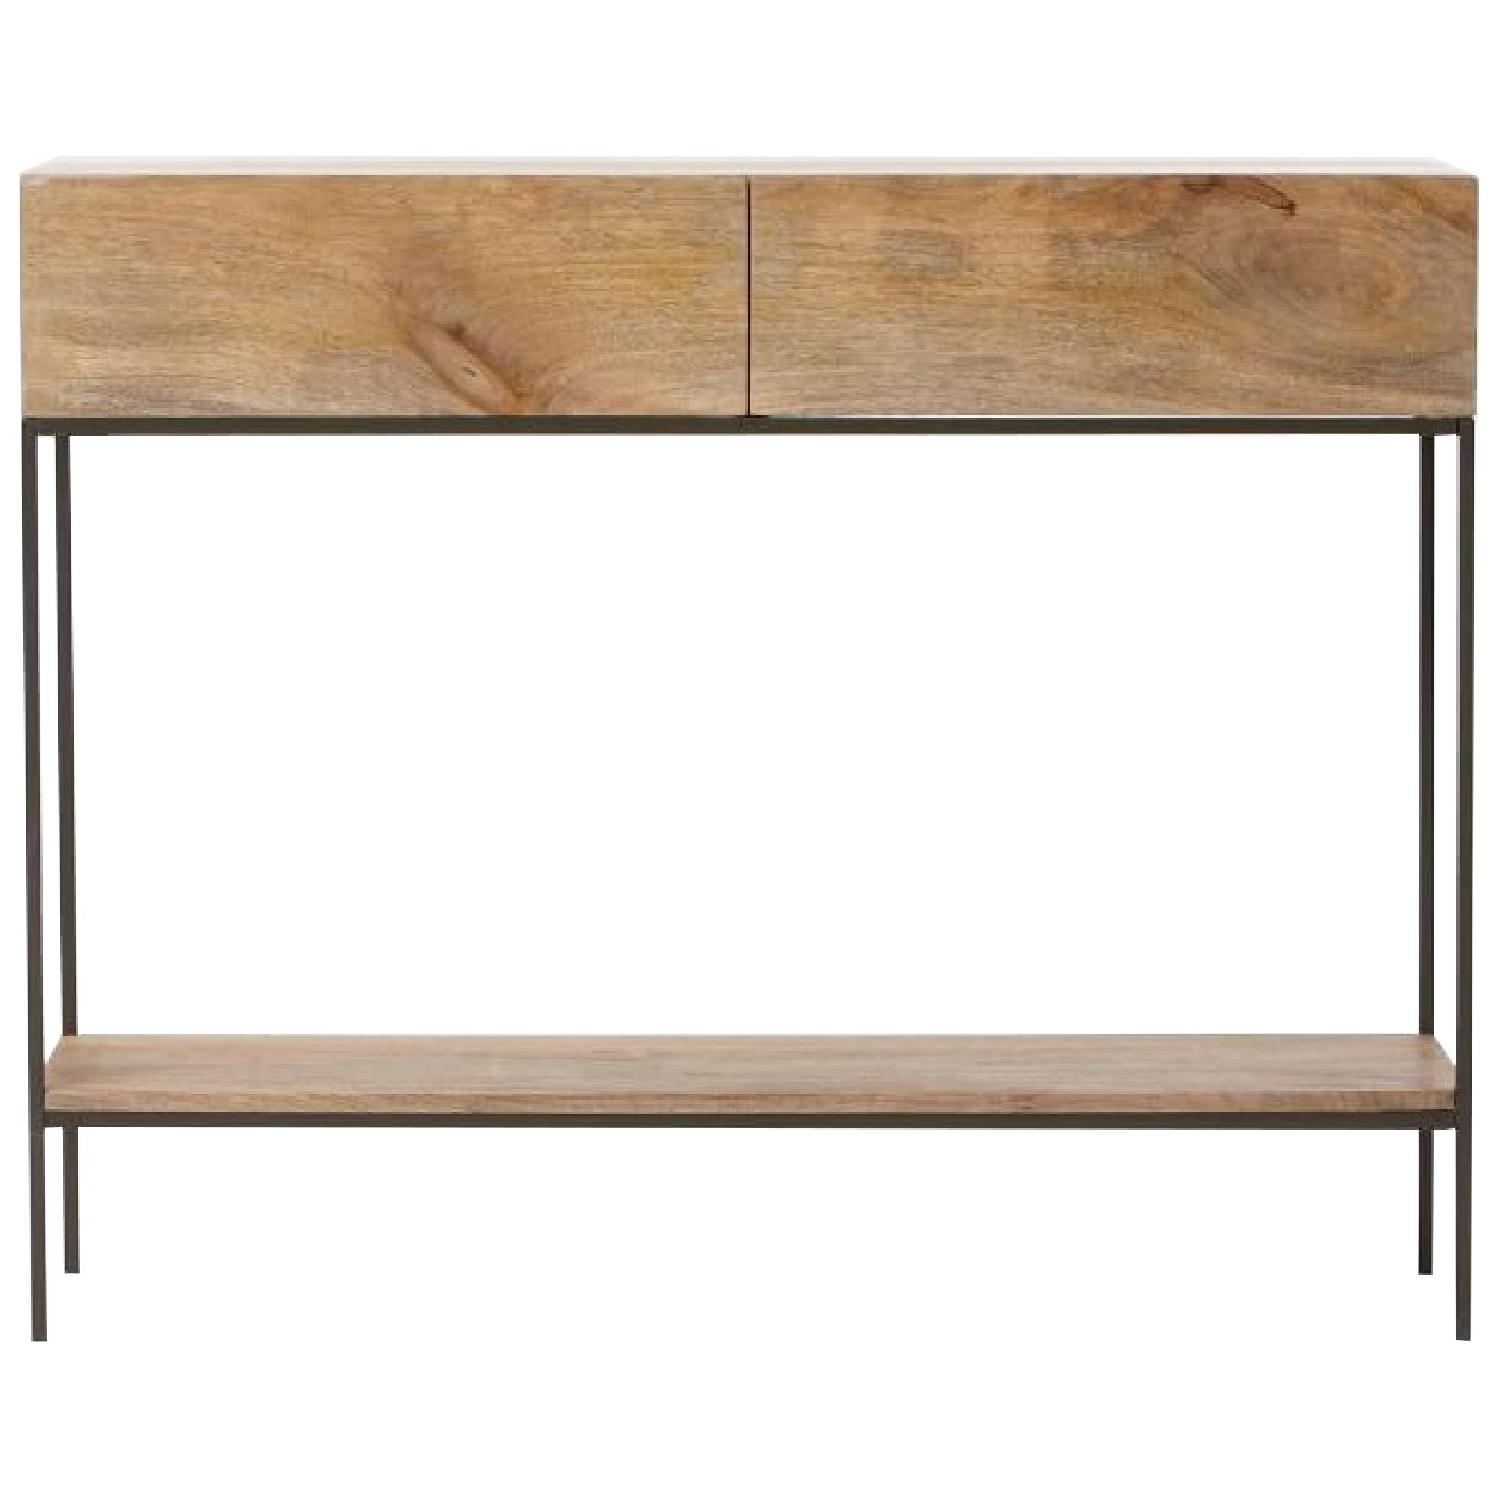 West Elm Modern Console Table in Natural Finish w/ Drawers - image-0